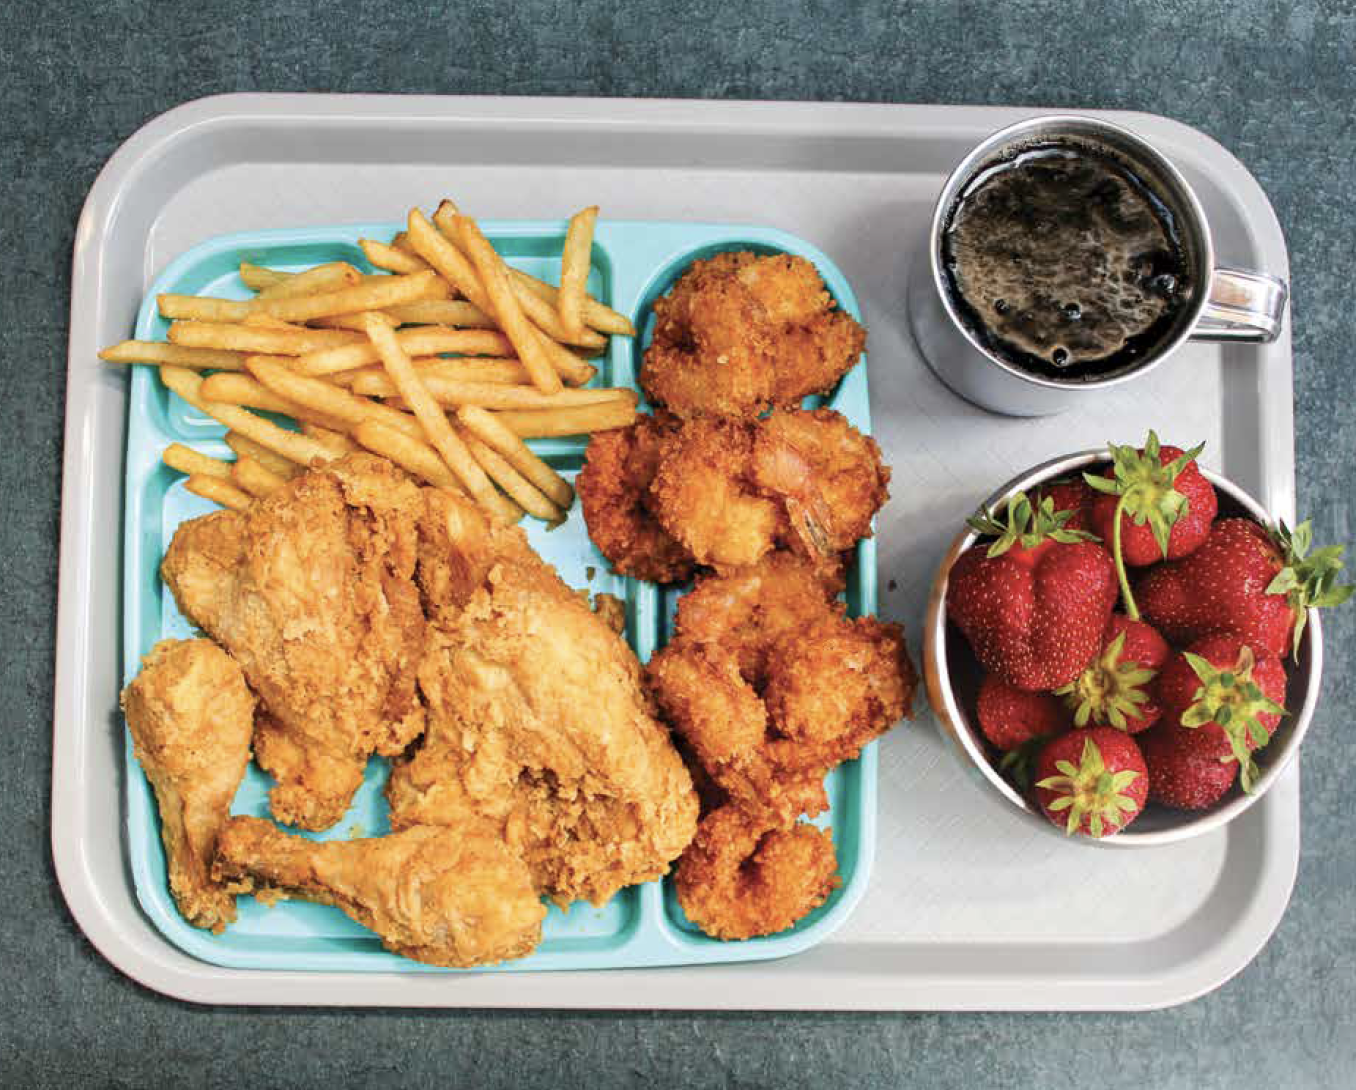 John Wayne Gacy's Last Meal, Fried Chicken